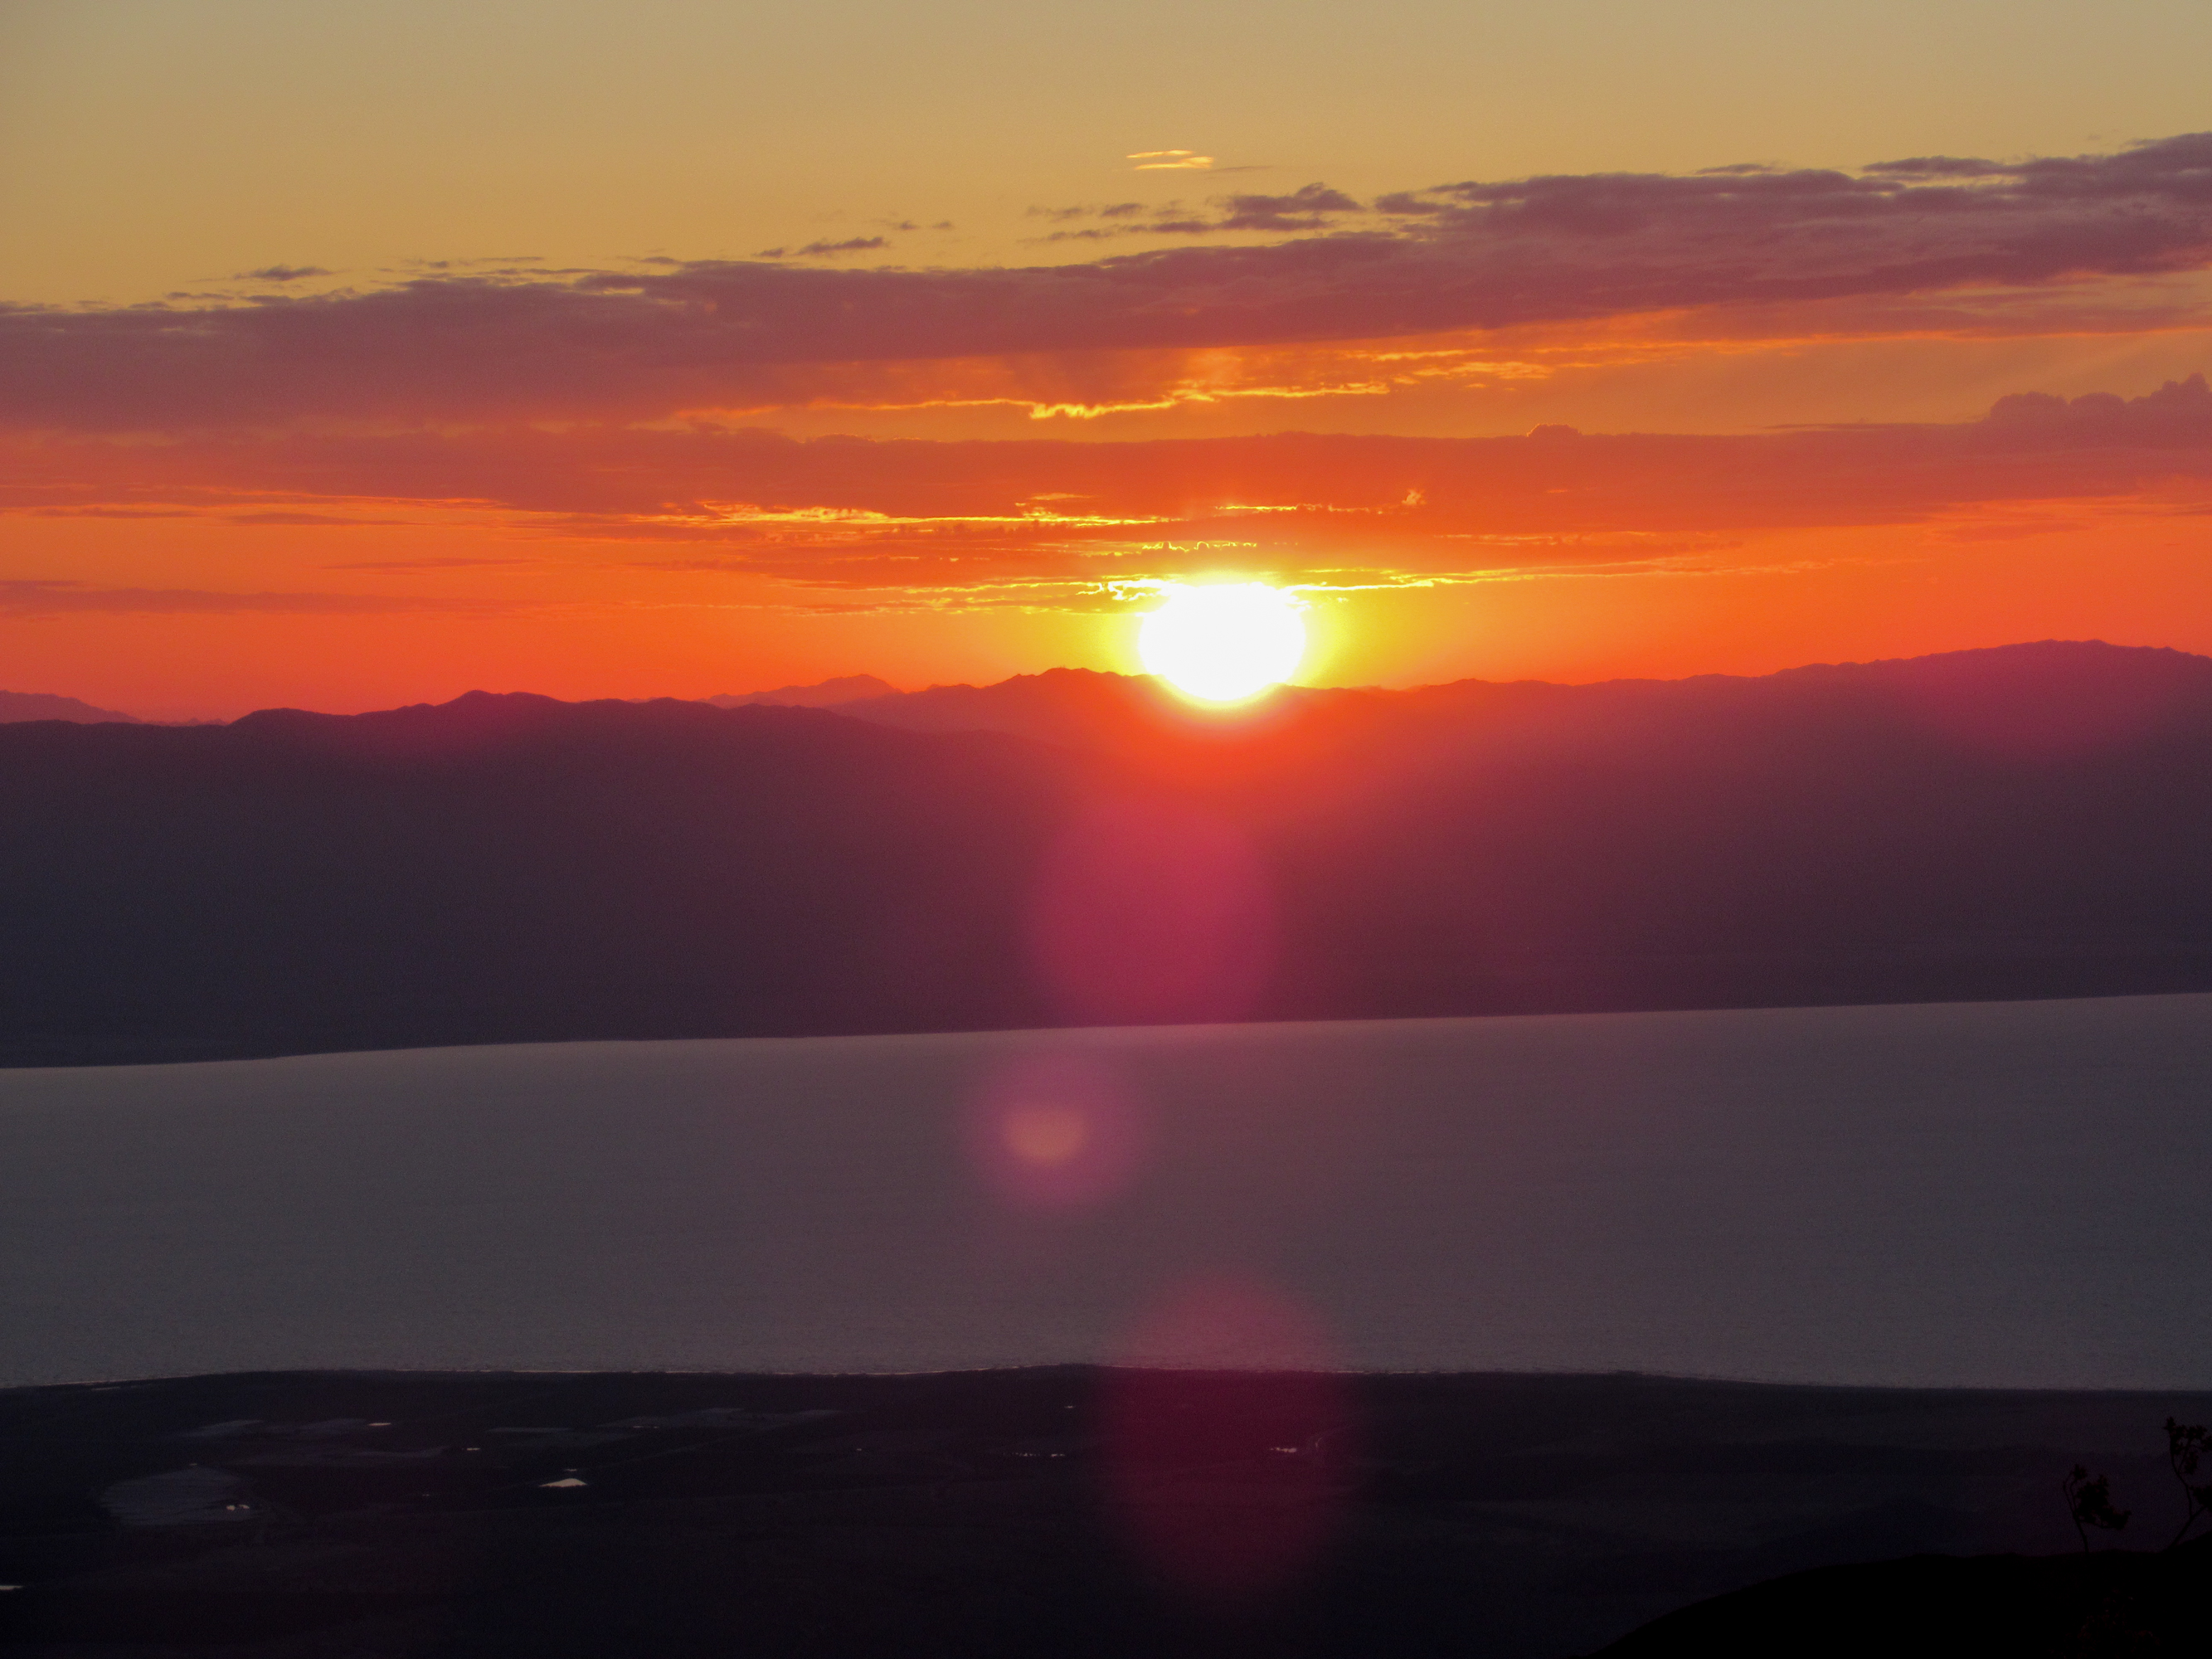 A red glowing sun rises above the Salton Sea.